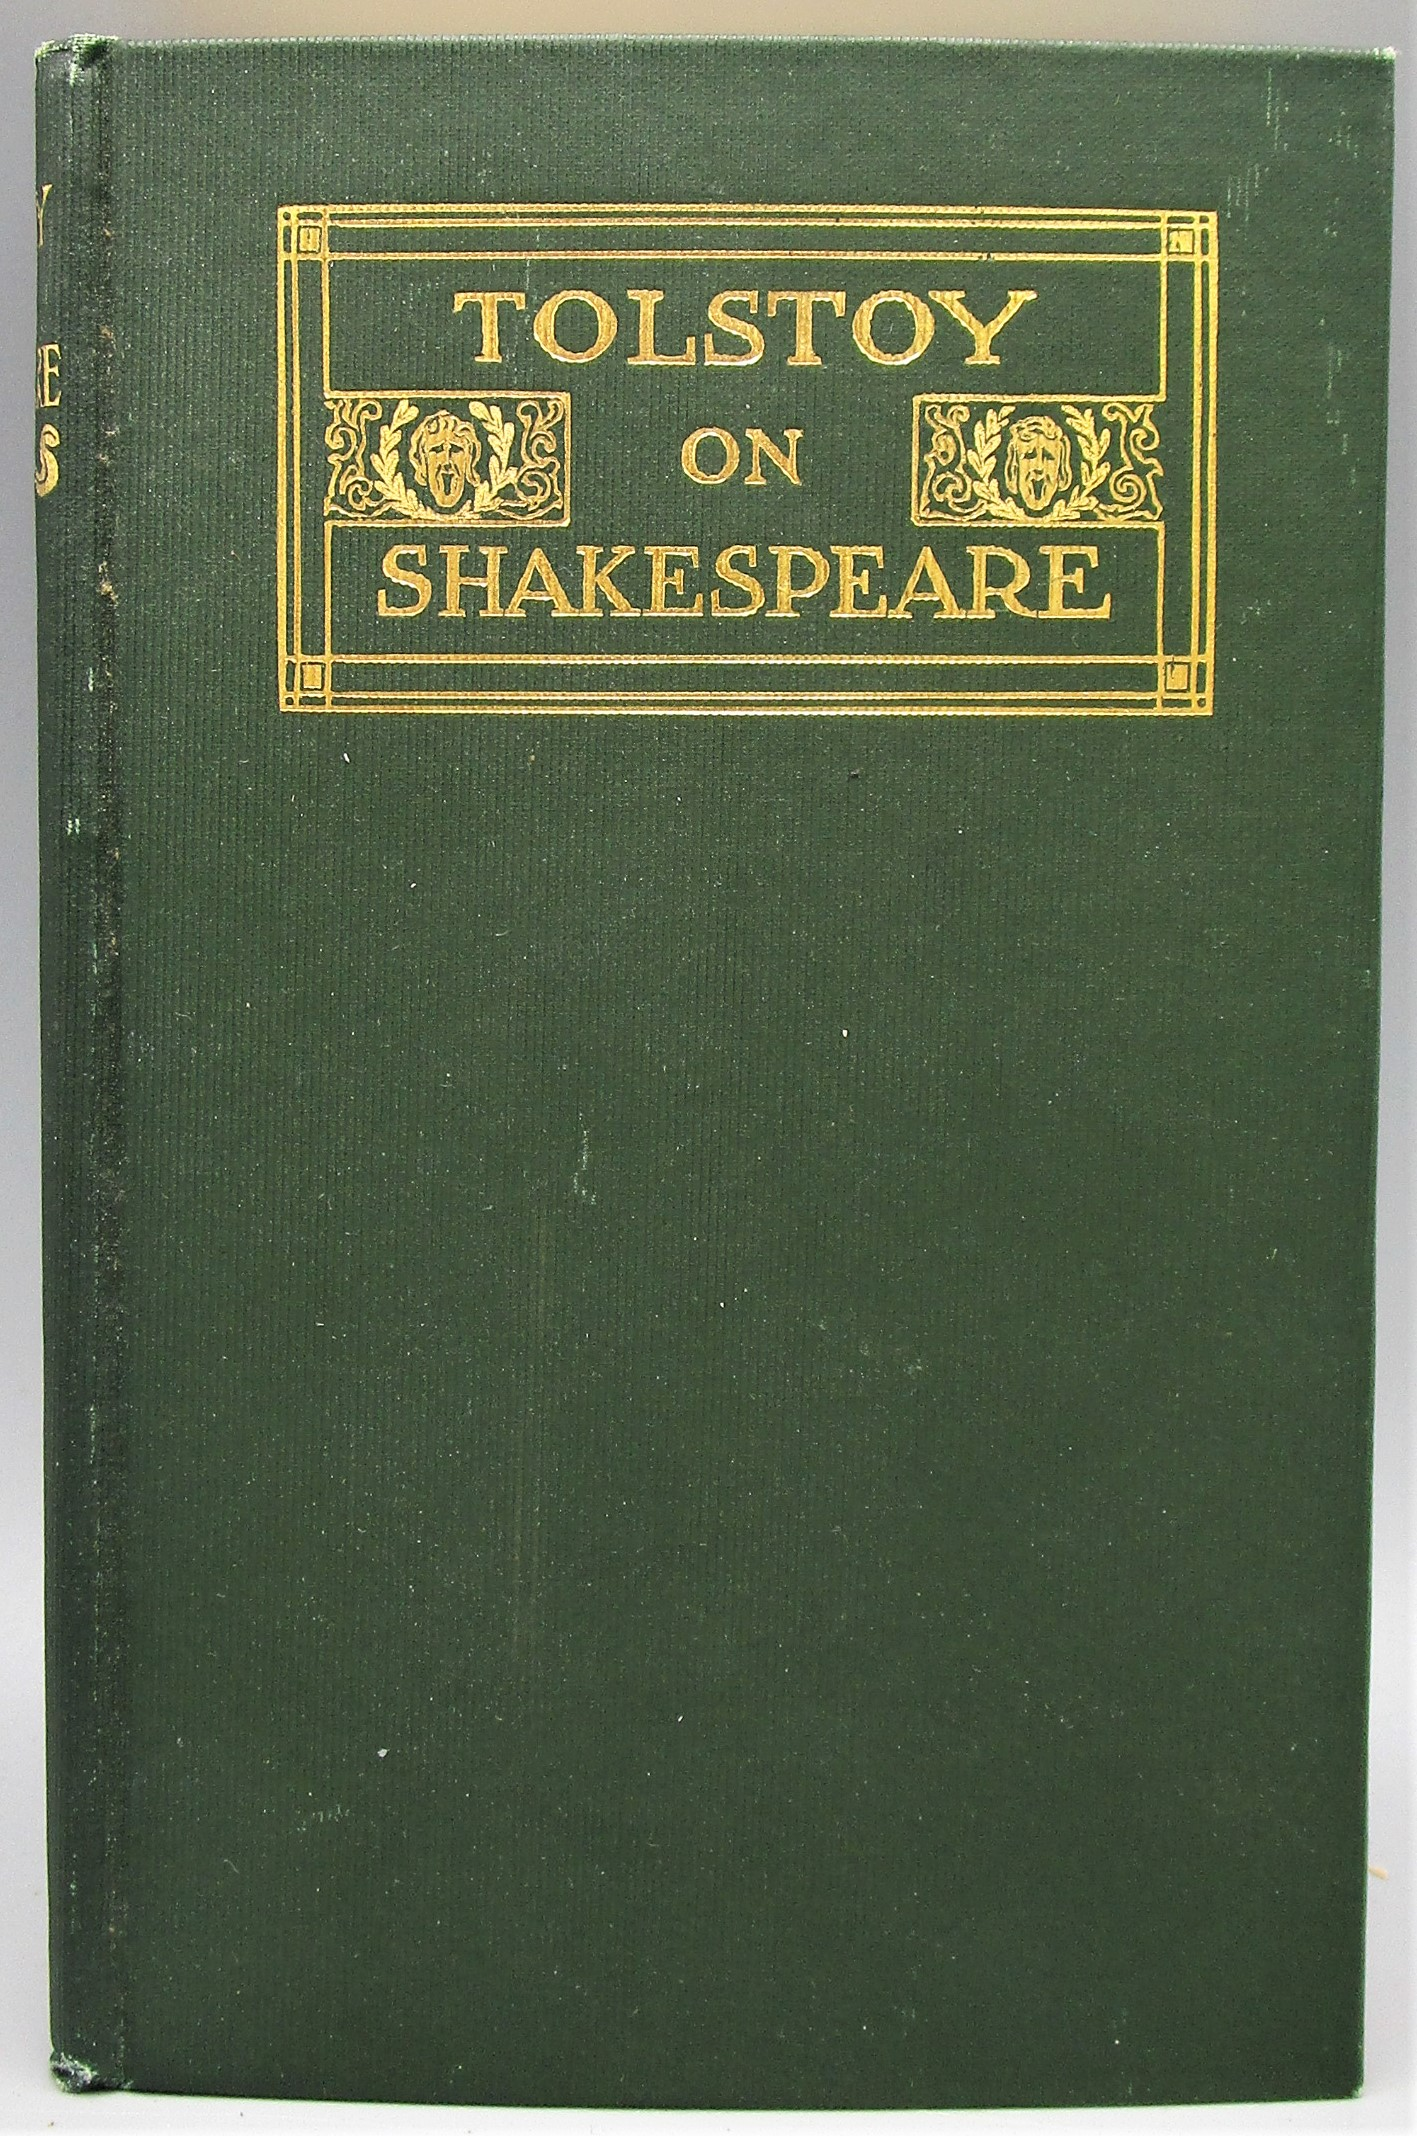 TOLSTOY ON SHAKESPEARE - 1906 [1st Ed]